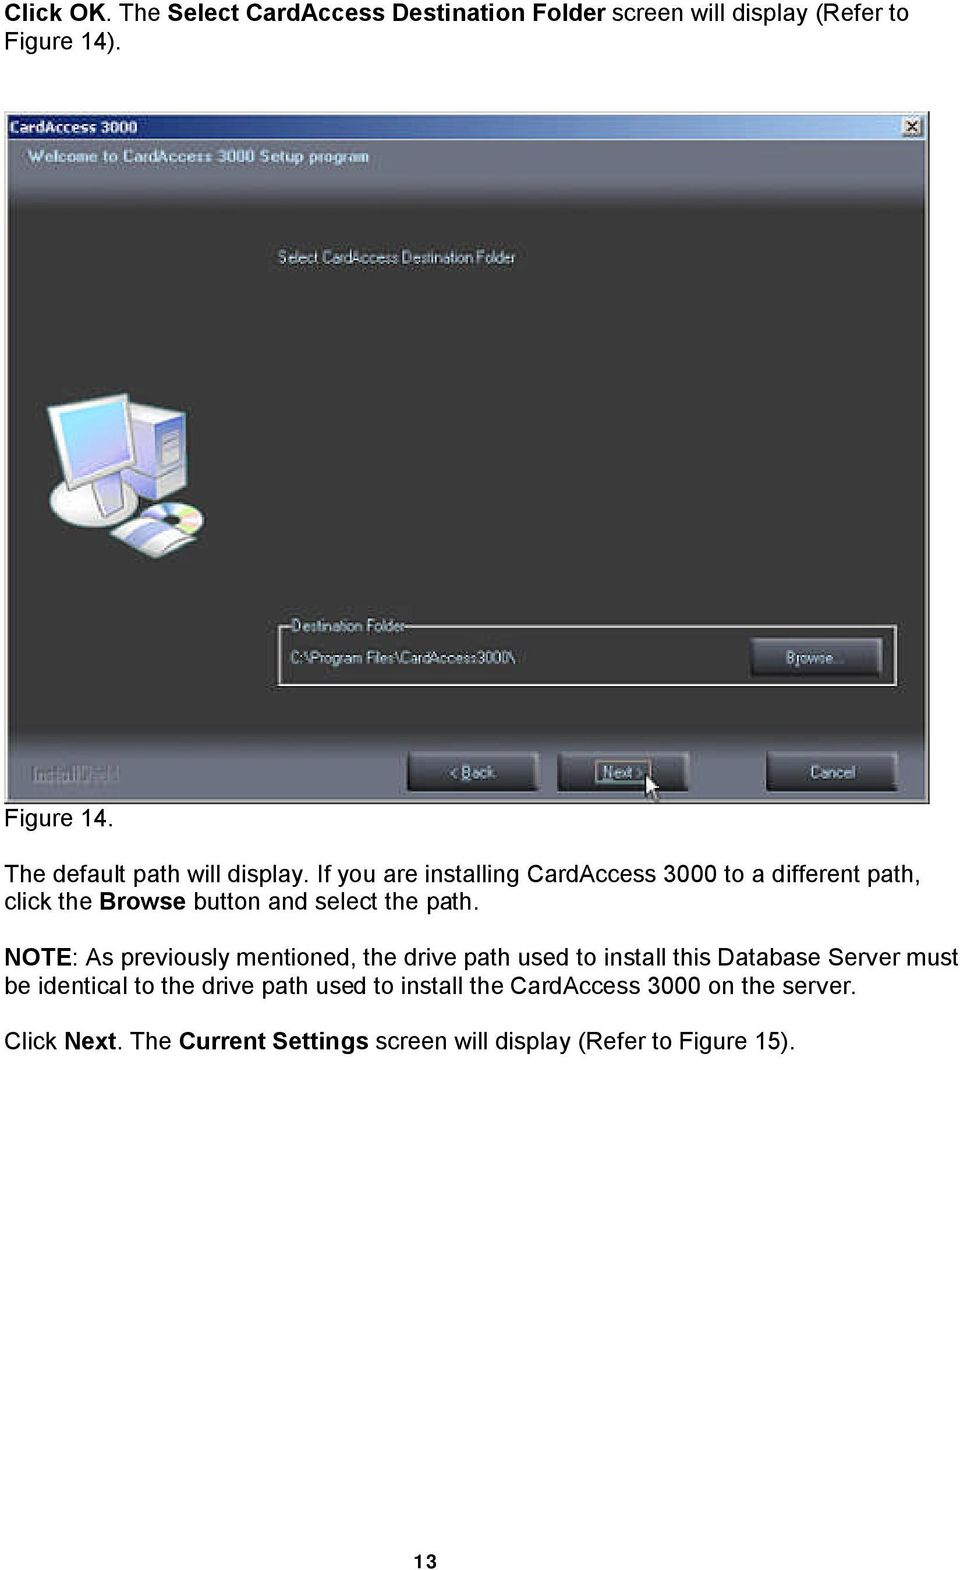 NOTE: As previously mentioned, the drive path used to install this Database Server must be identical to the drive path